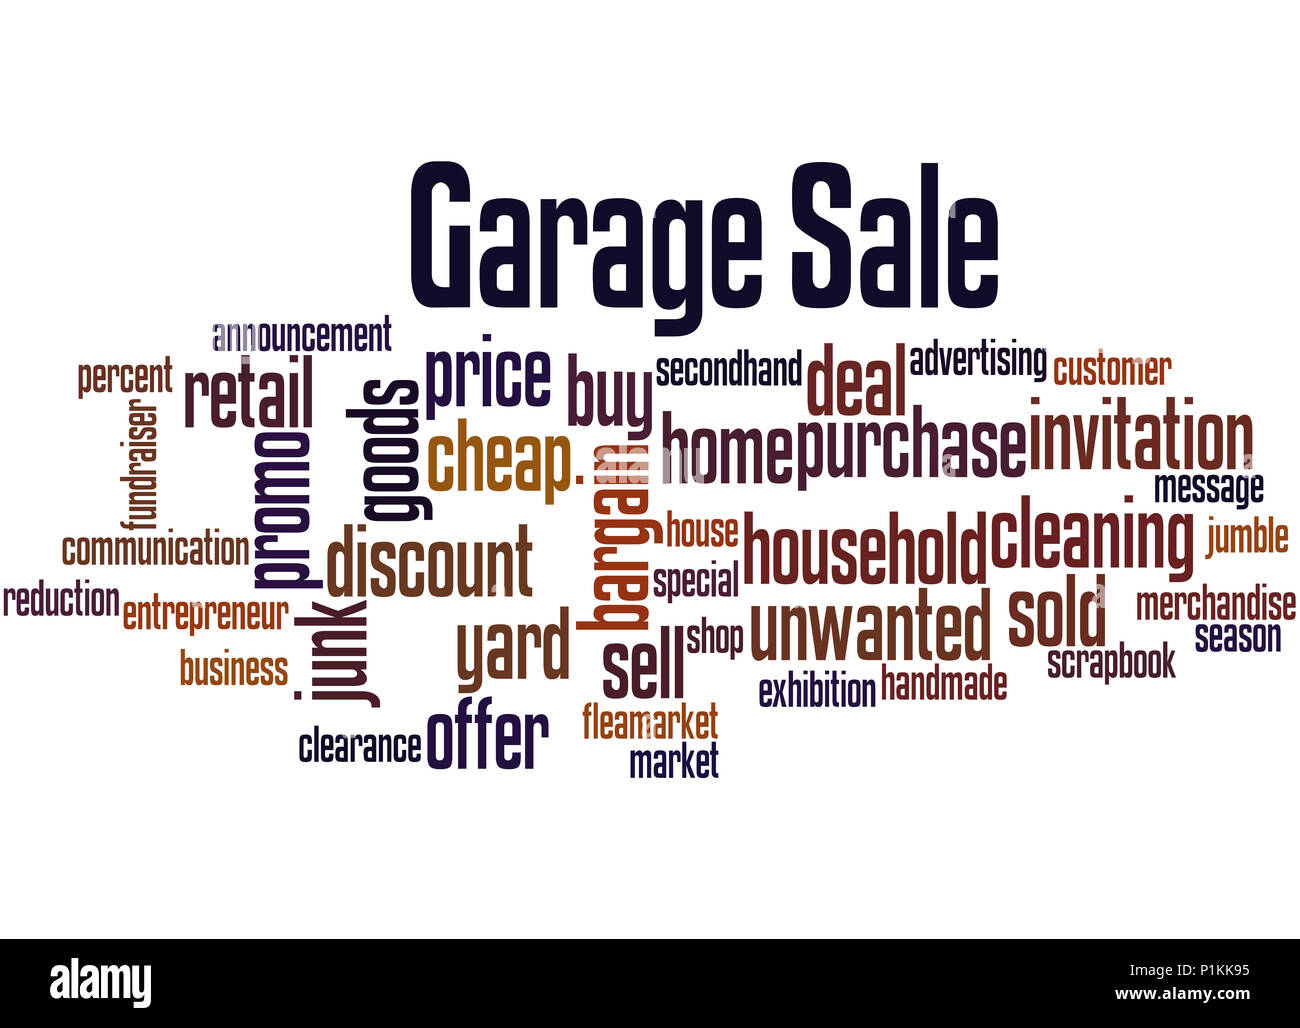 Garage Sale, word cloud concept on white background. Stock Photo